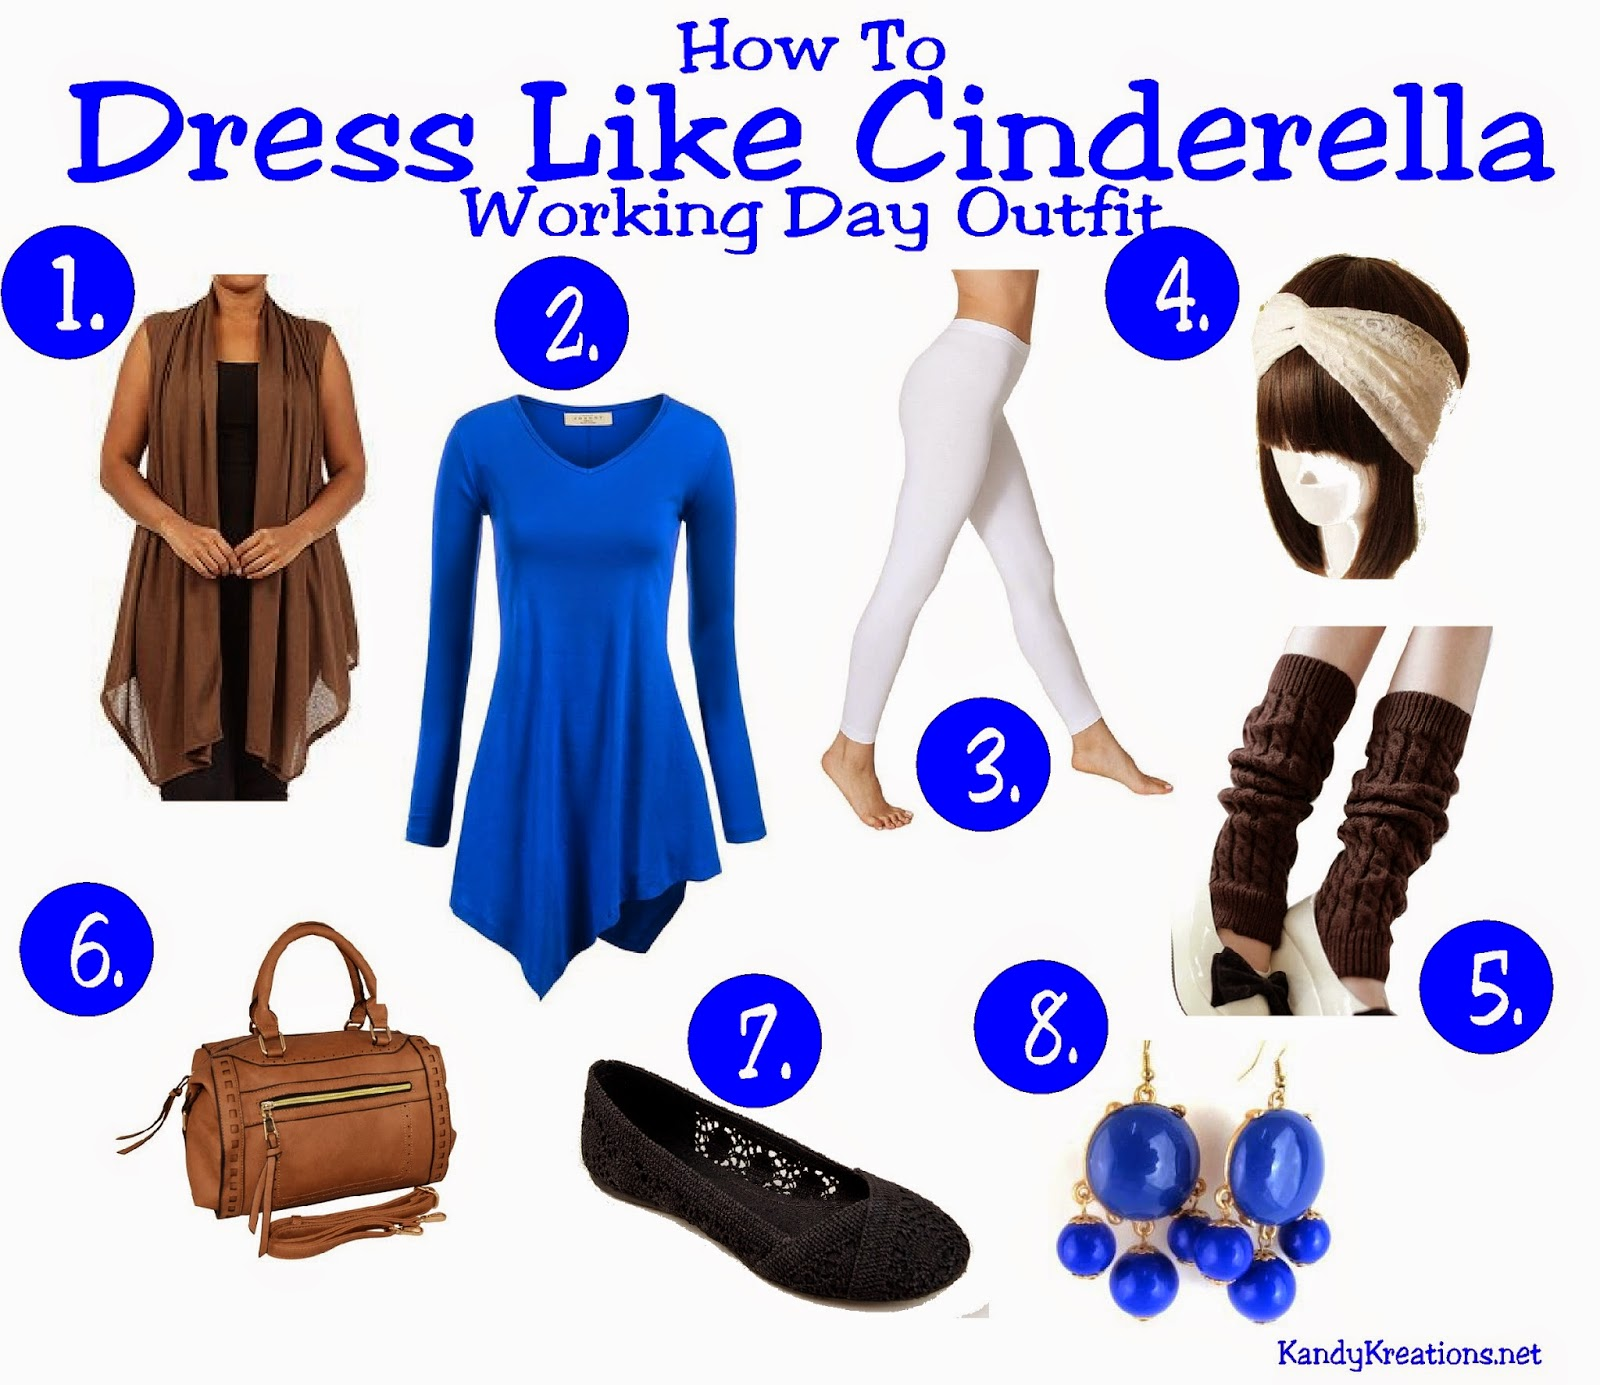 How to dress like Cinderella in her Work Outfit by KandyKreations